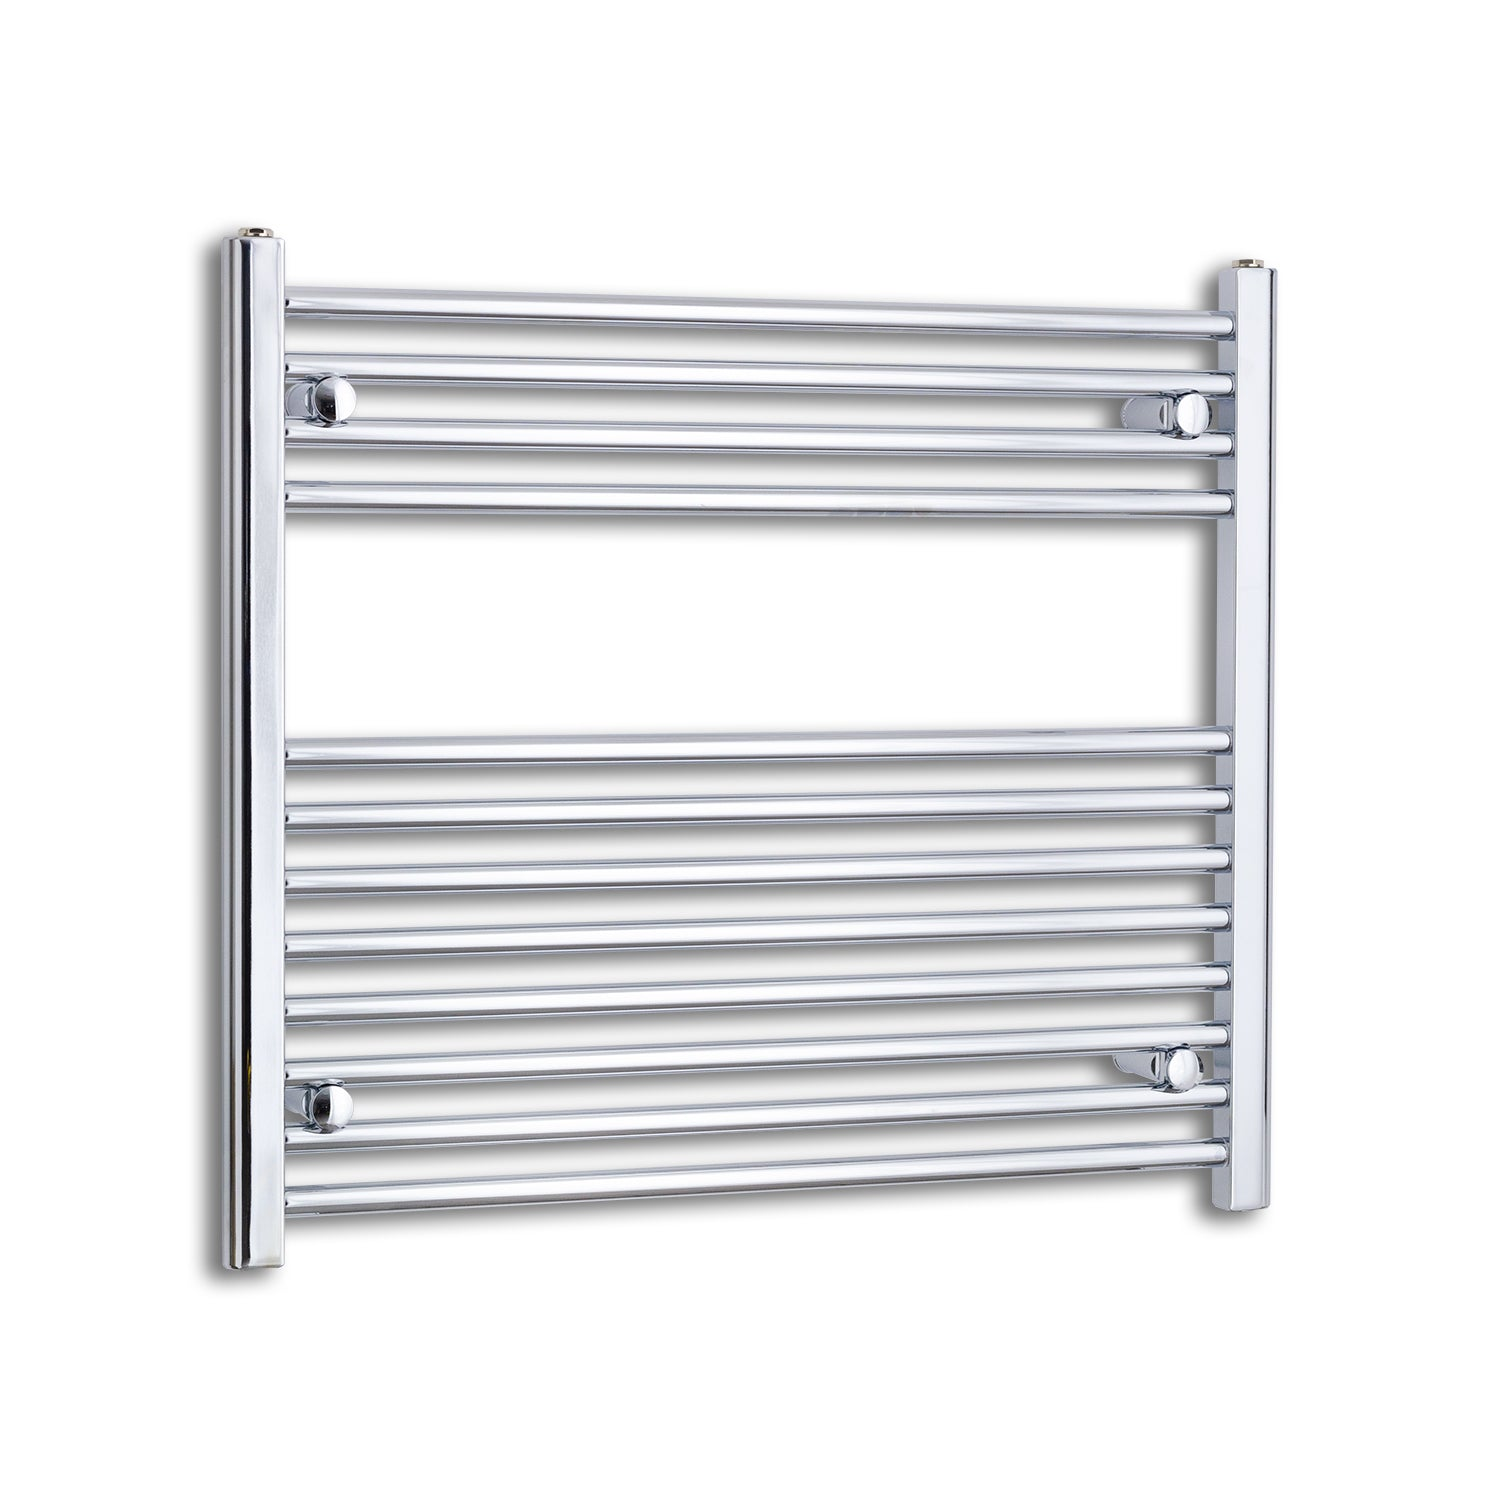 800mm Wide 700mm High Flat Chrome Heated Towel Rail Radiator HTR,Towel Rail Only